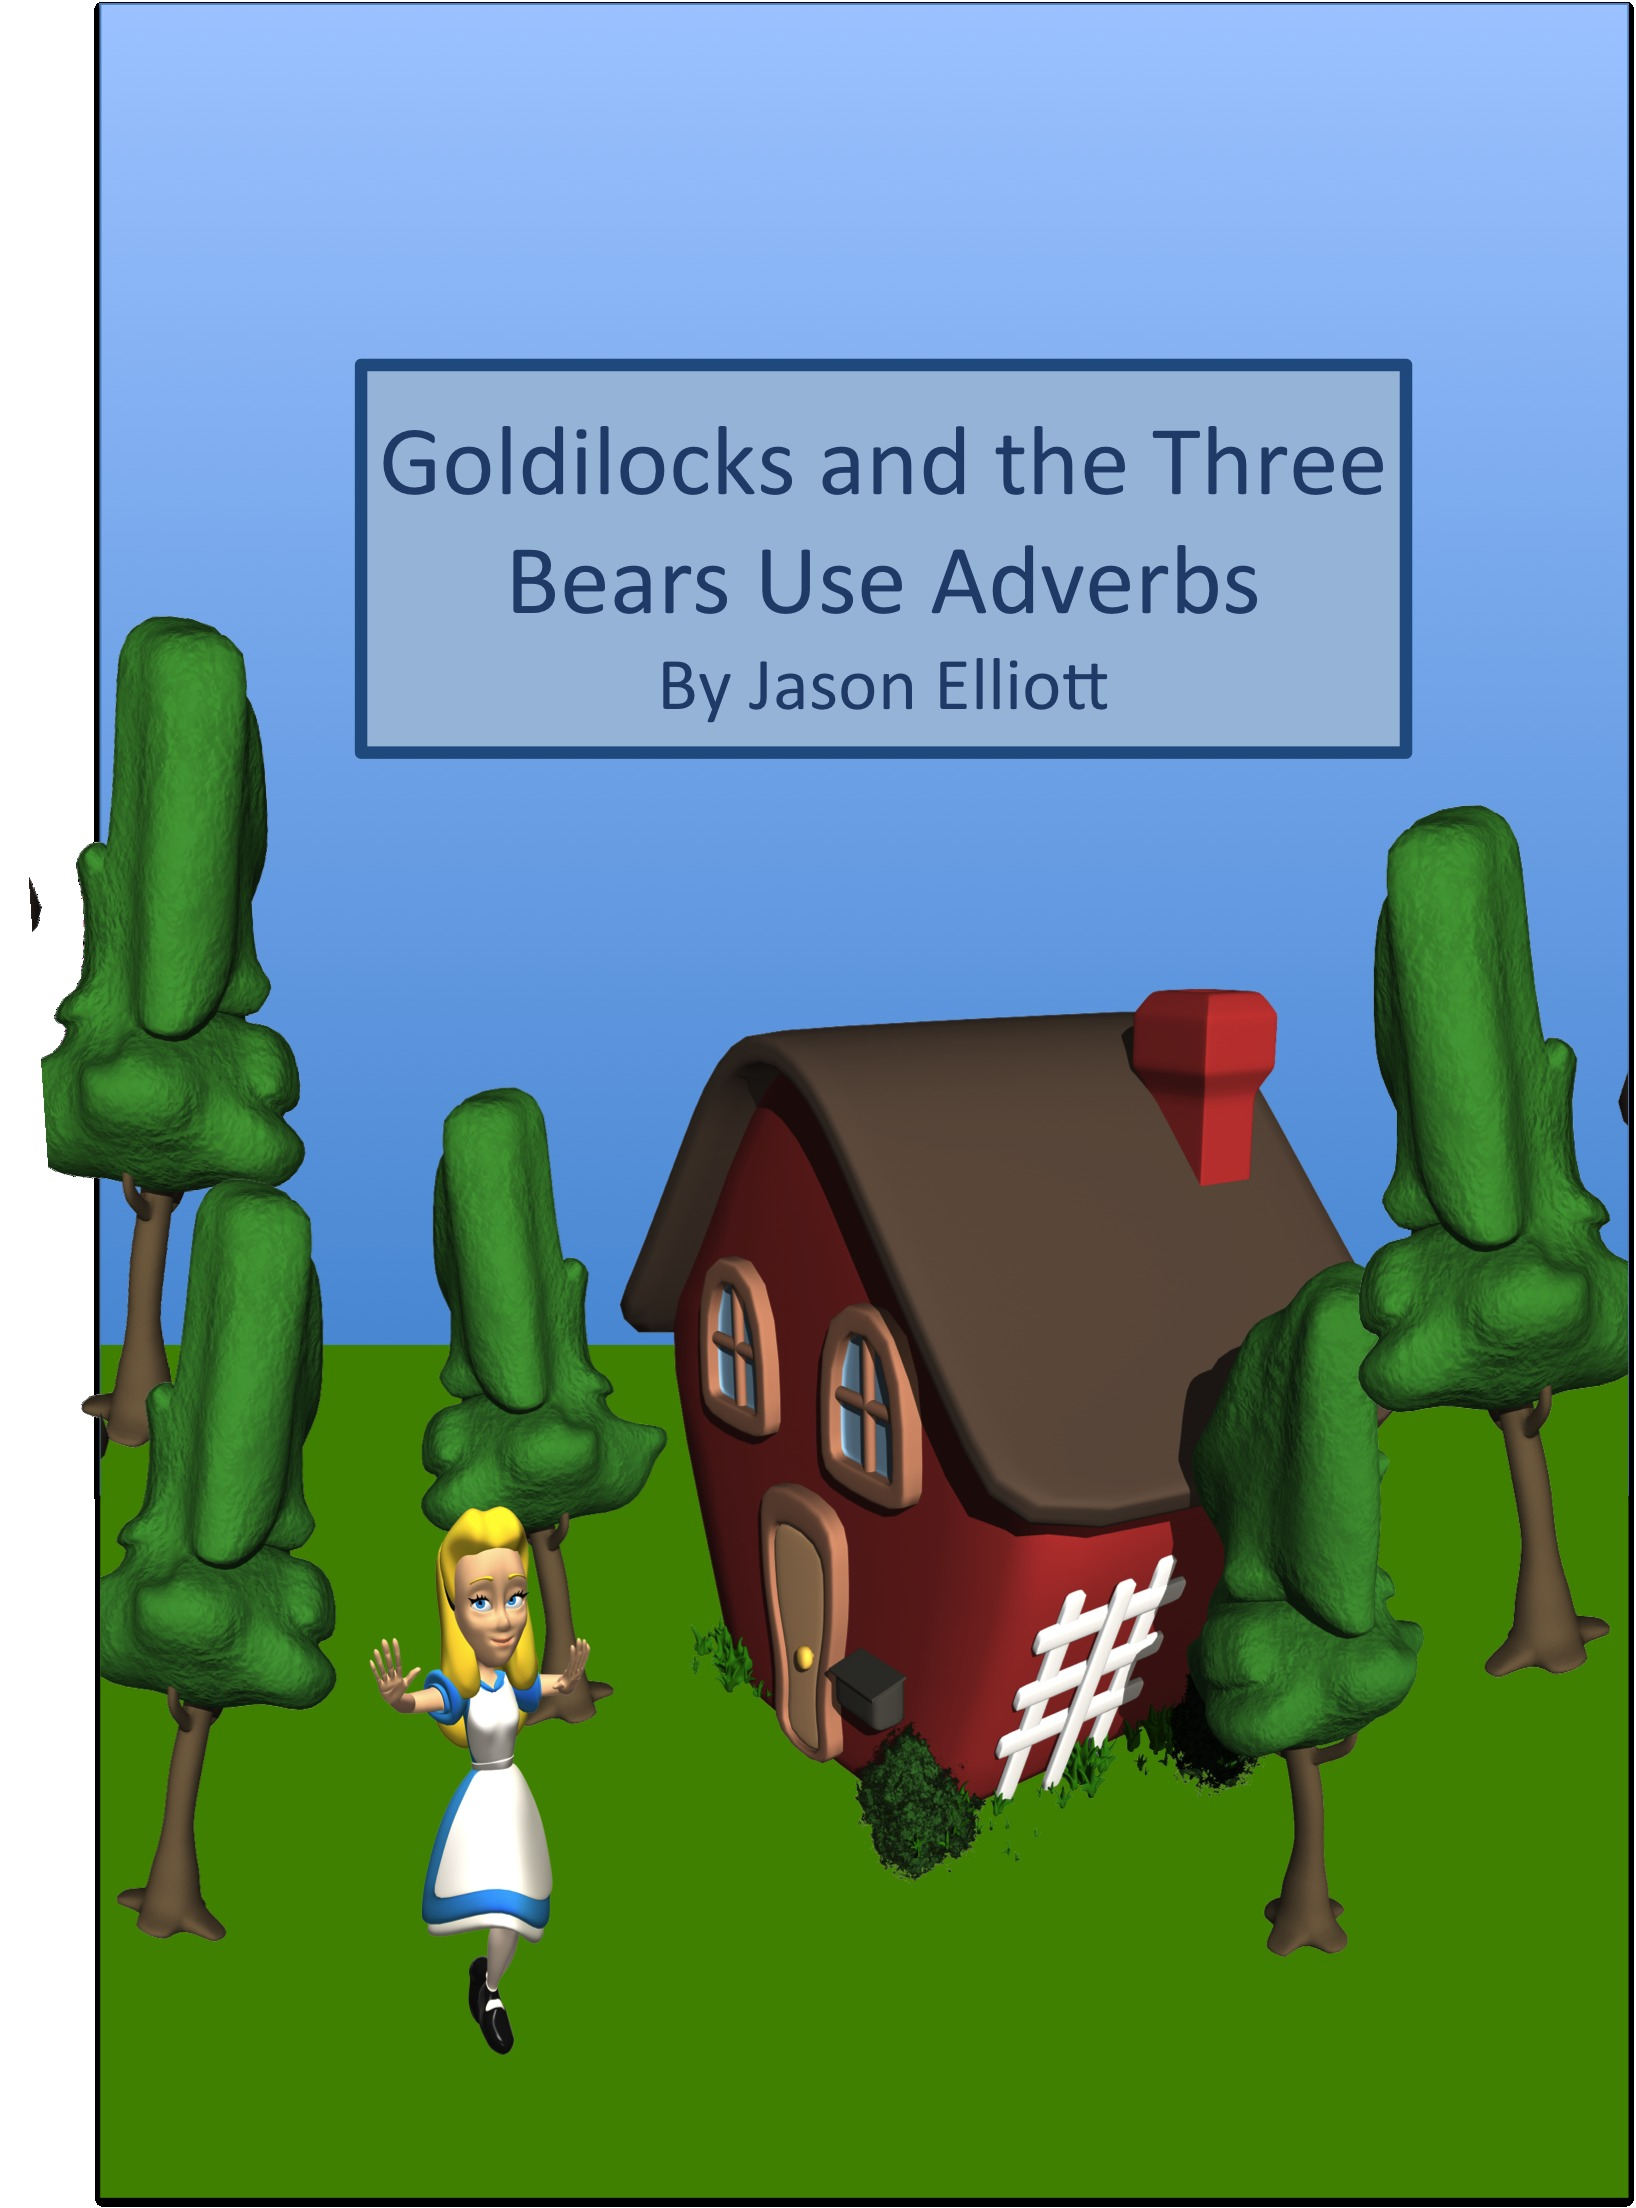 Goldilocks and the Three Bears Use Adverbs By: Jason Elliott